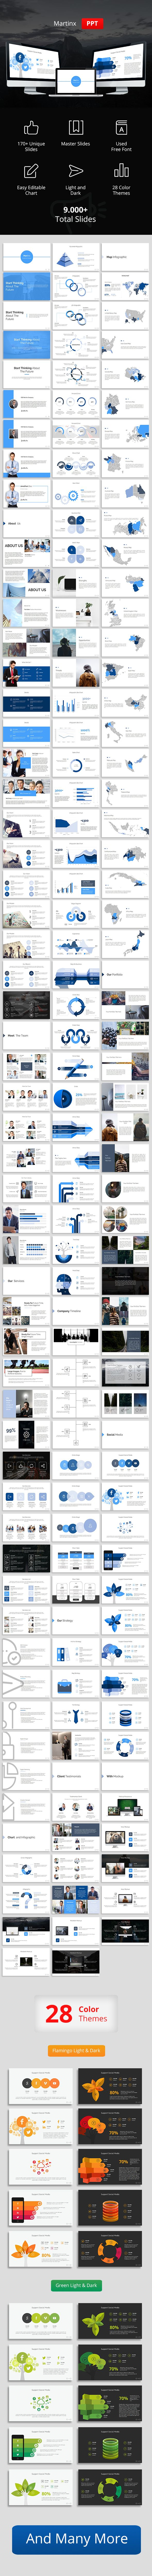 Martinx PowerPoint Template. Download: https://graphicriver.net/item/martinx-powerpoint-template/18599879?ref=thanhdesign